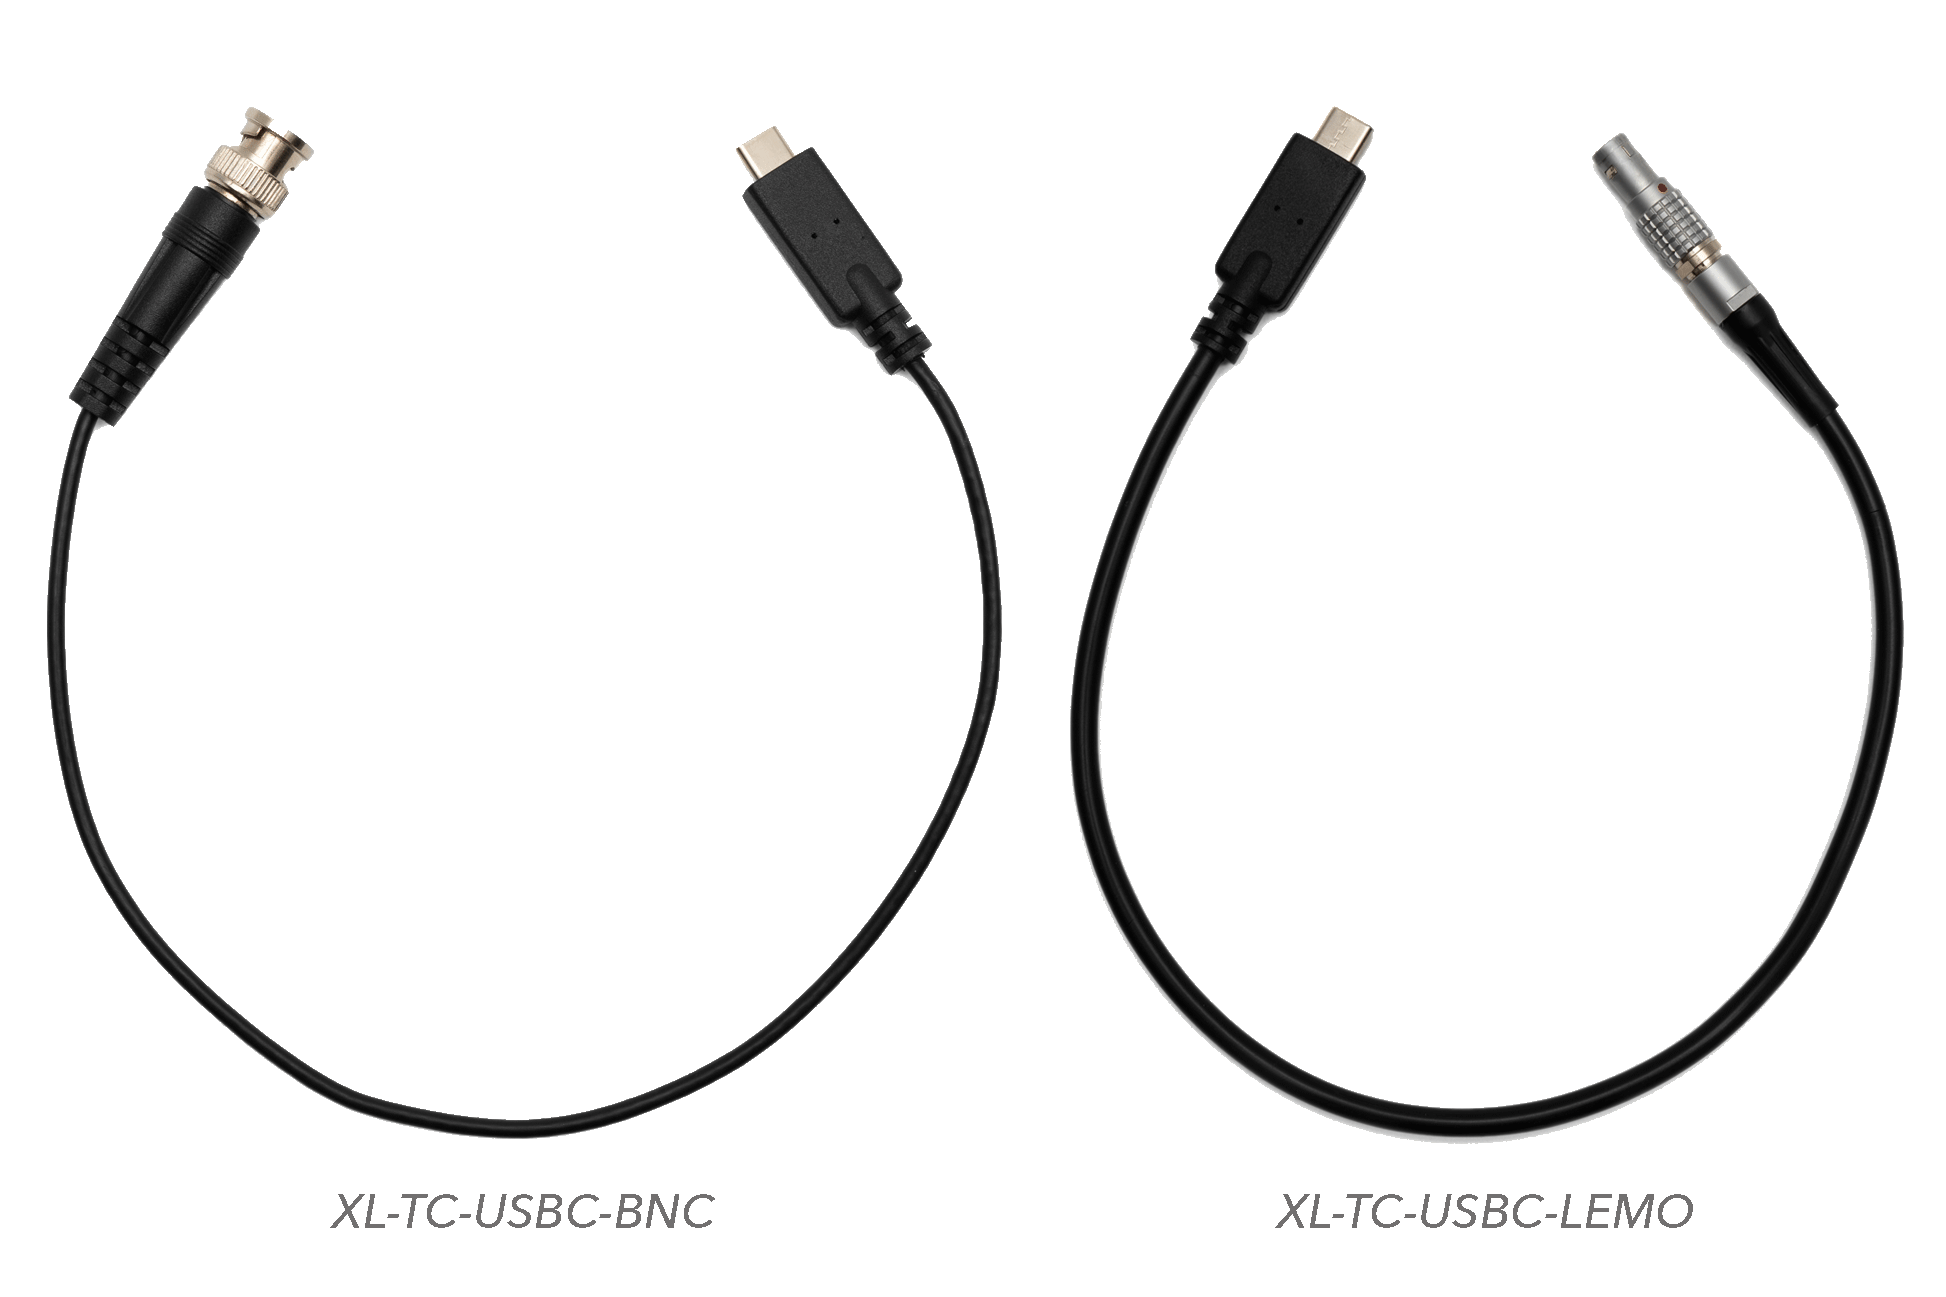 Cables for the A20-TX-Mini